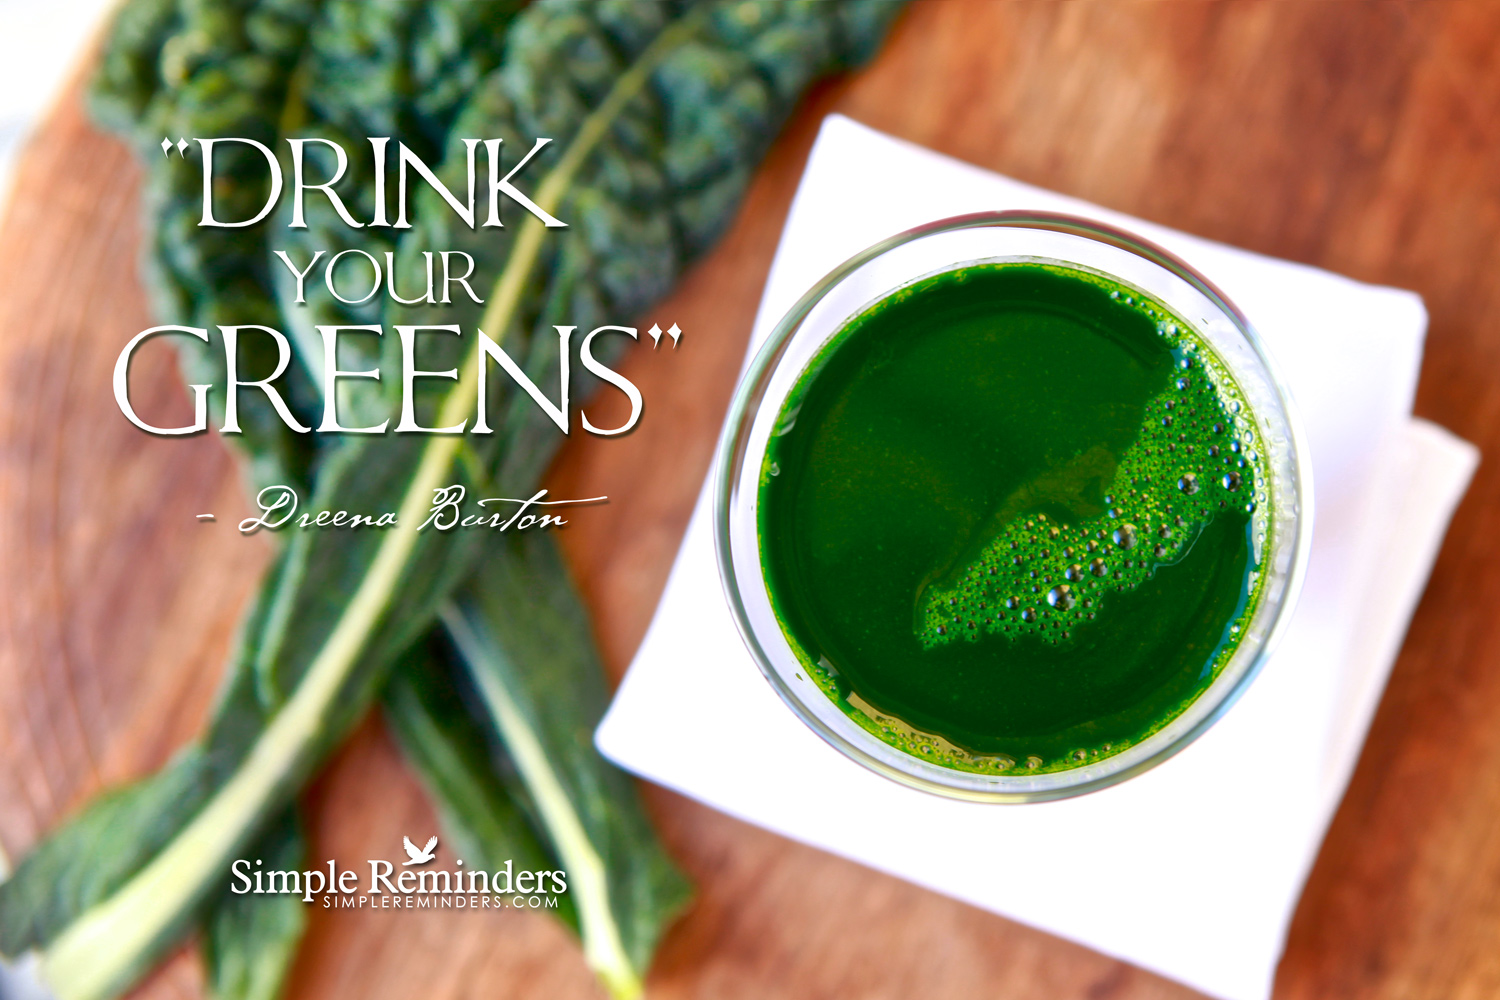 simplereminders.com-drink-your-greens-burton-withtext-displayres